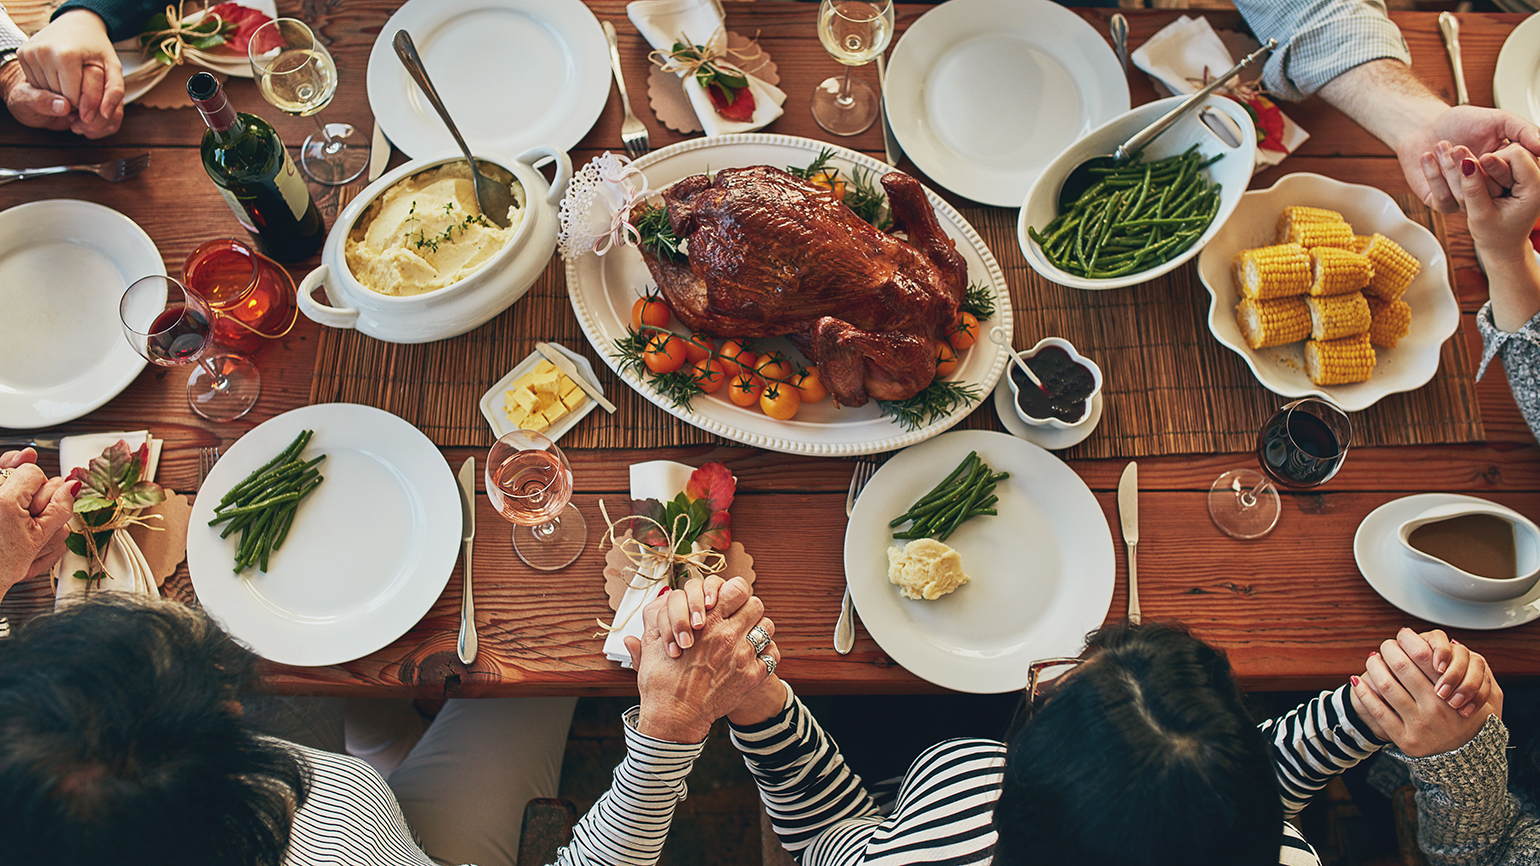 A family clasps hands in prayer at the Thanksgiving table